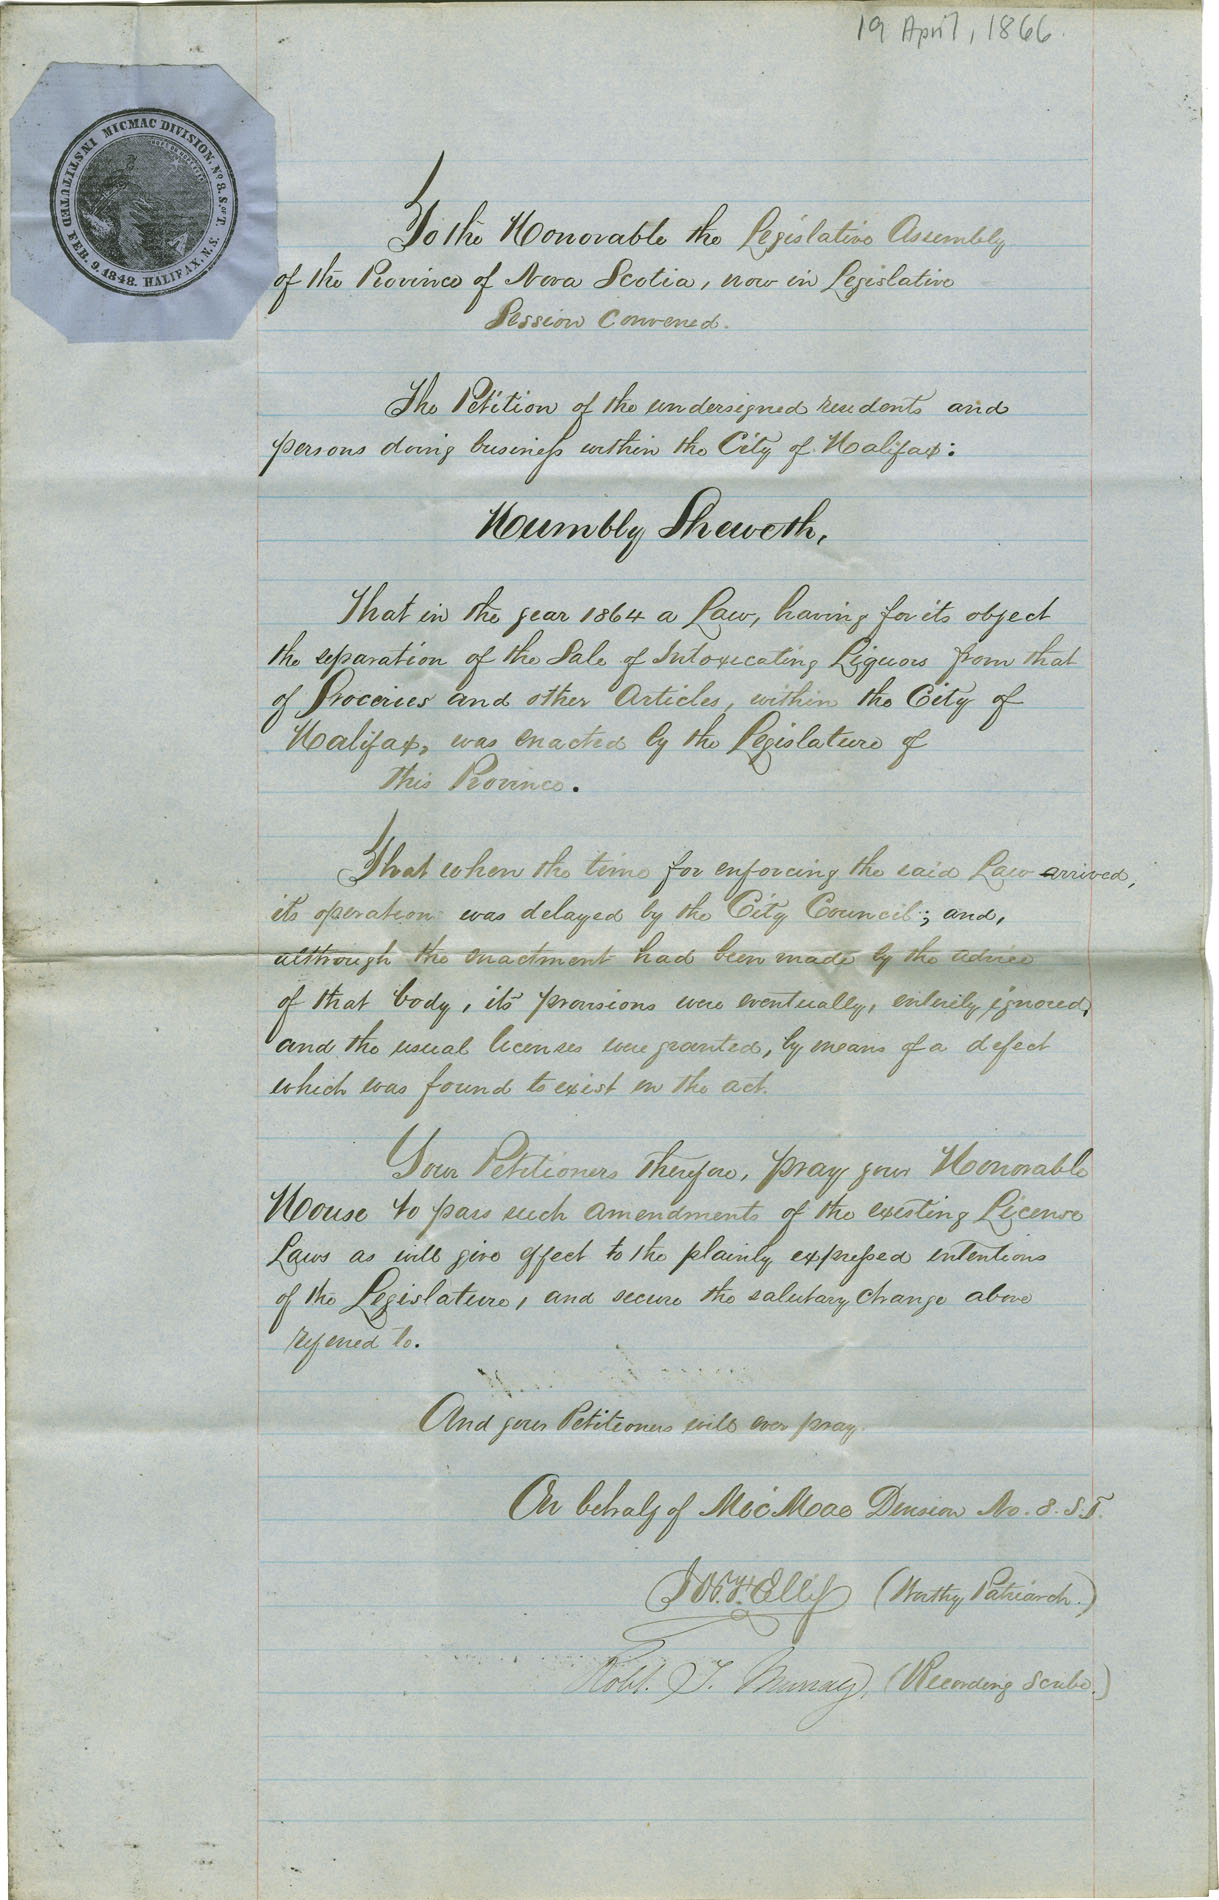 Temperance petition from the Micmac Division of the Sons of Temperance, Halifax.